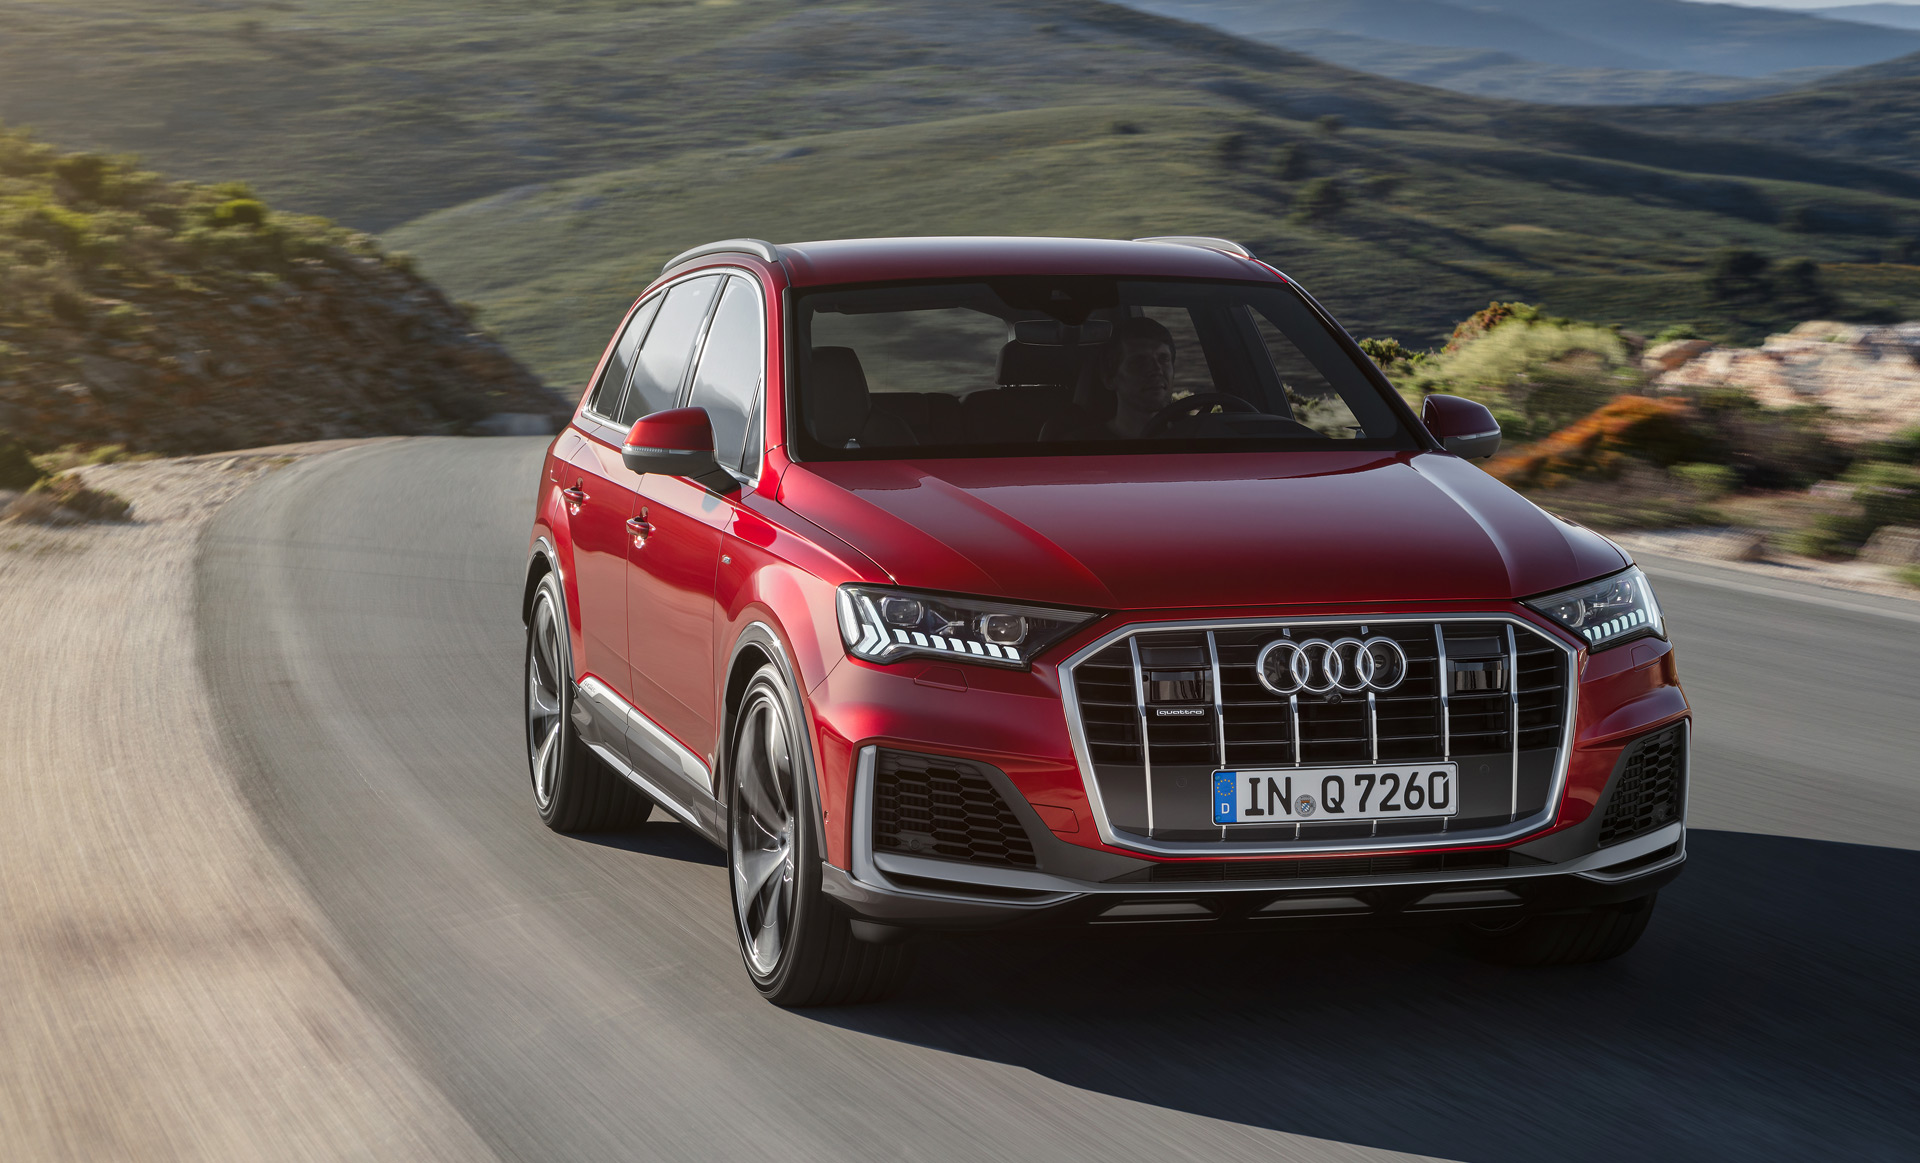 2020 Audi Q7 Review.2020 Audi Q7 Review Ratings Specs Prices And Photos